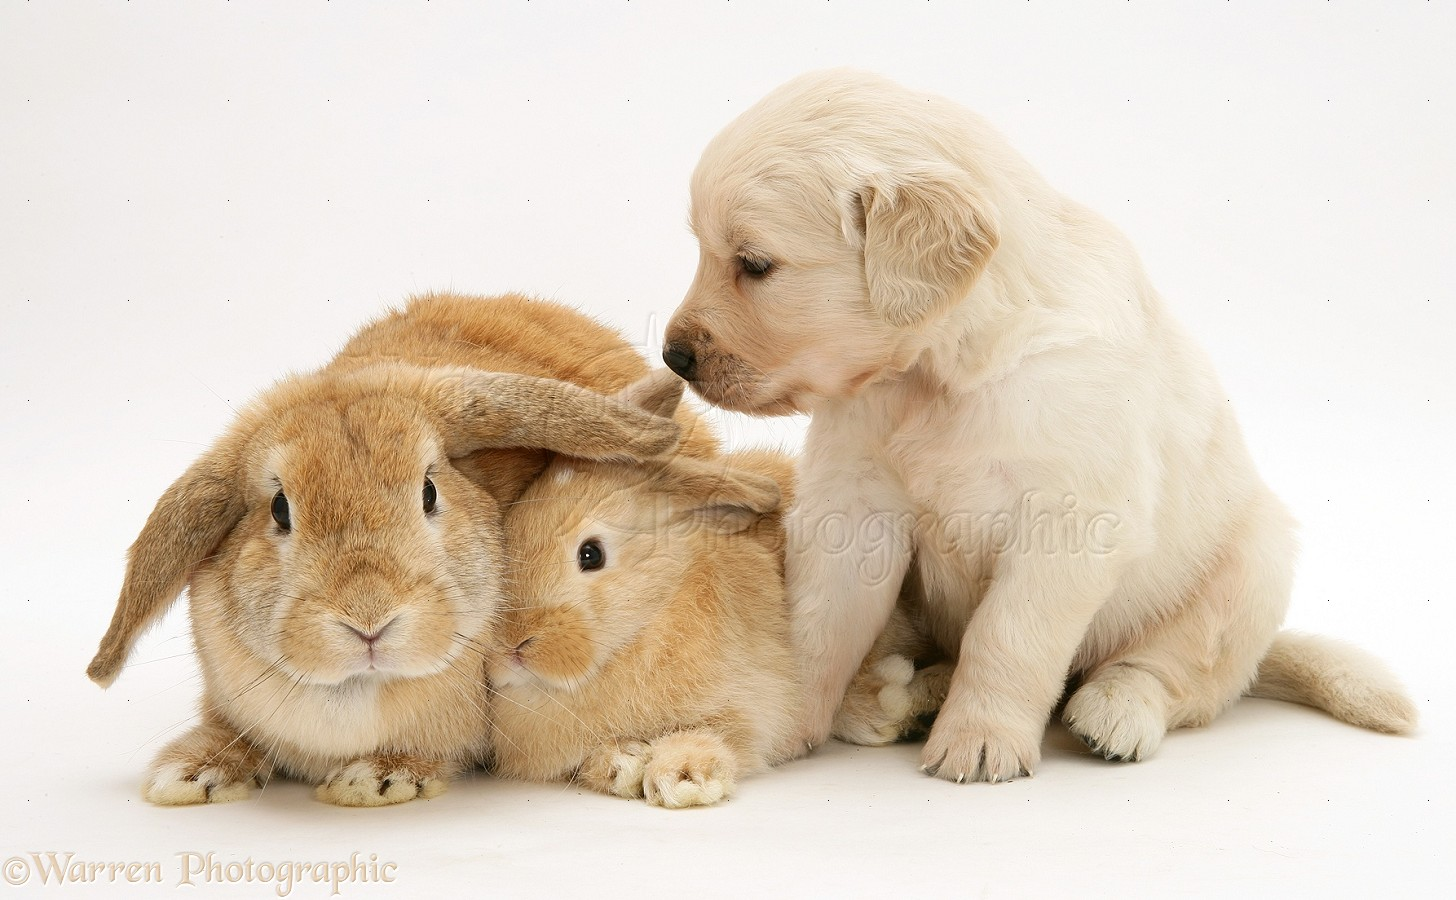 WP17861 Mother and baby sandy Lop rabbits with Golden Retriever pup.